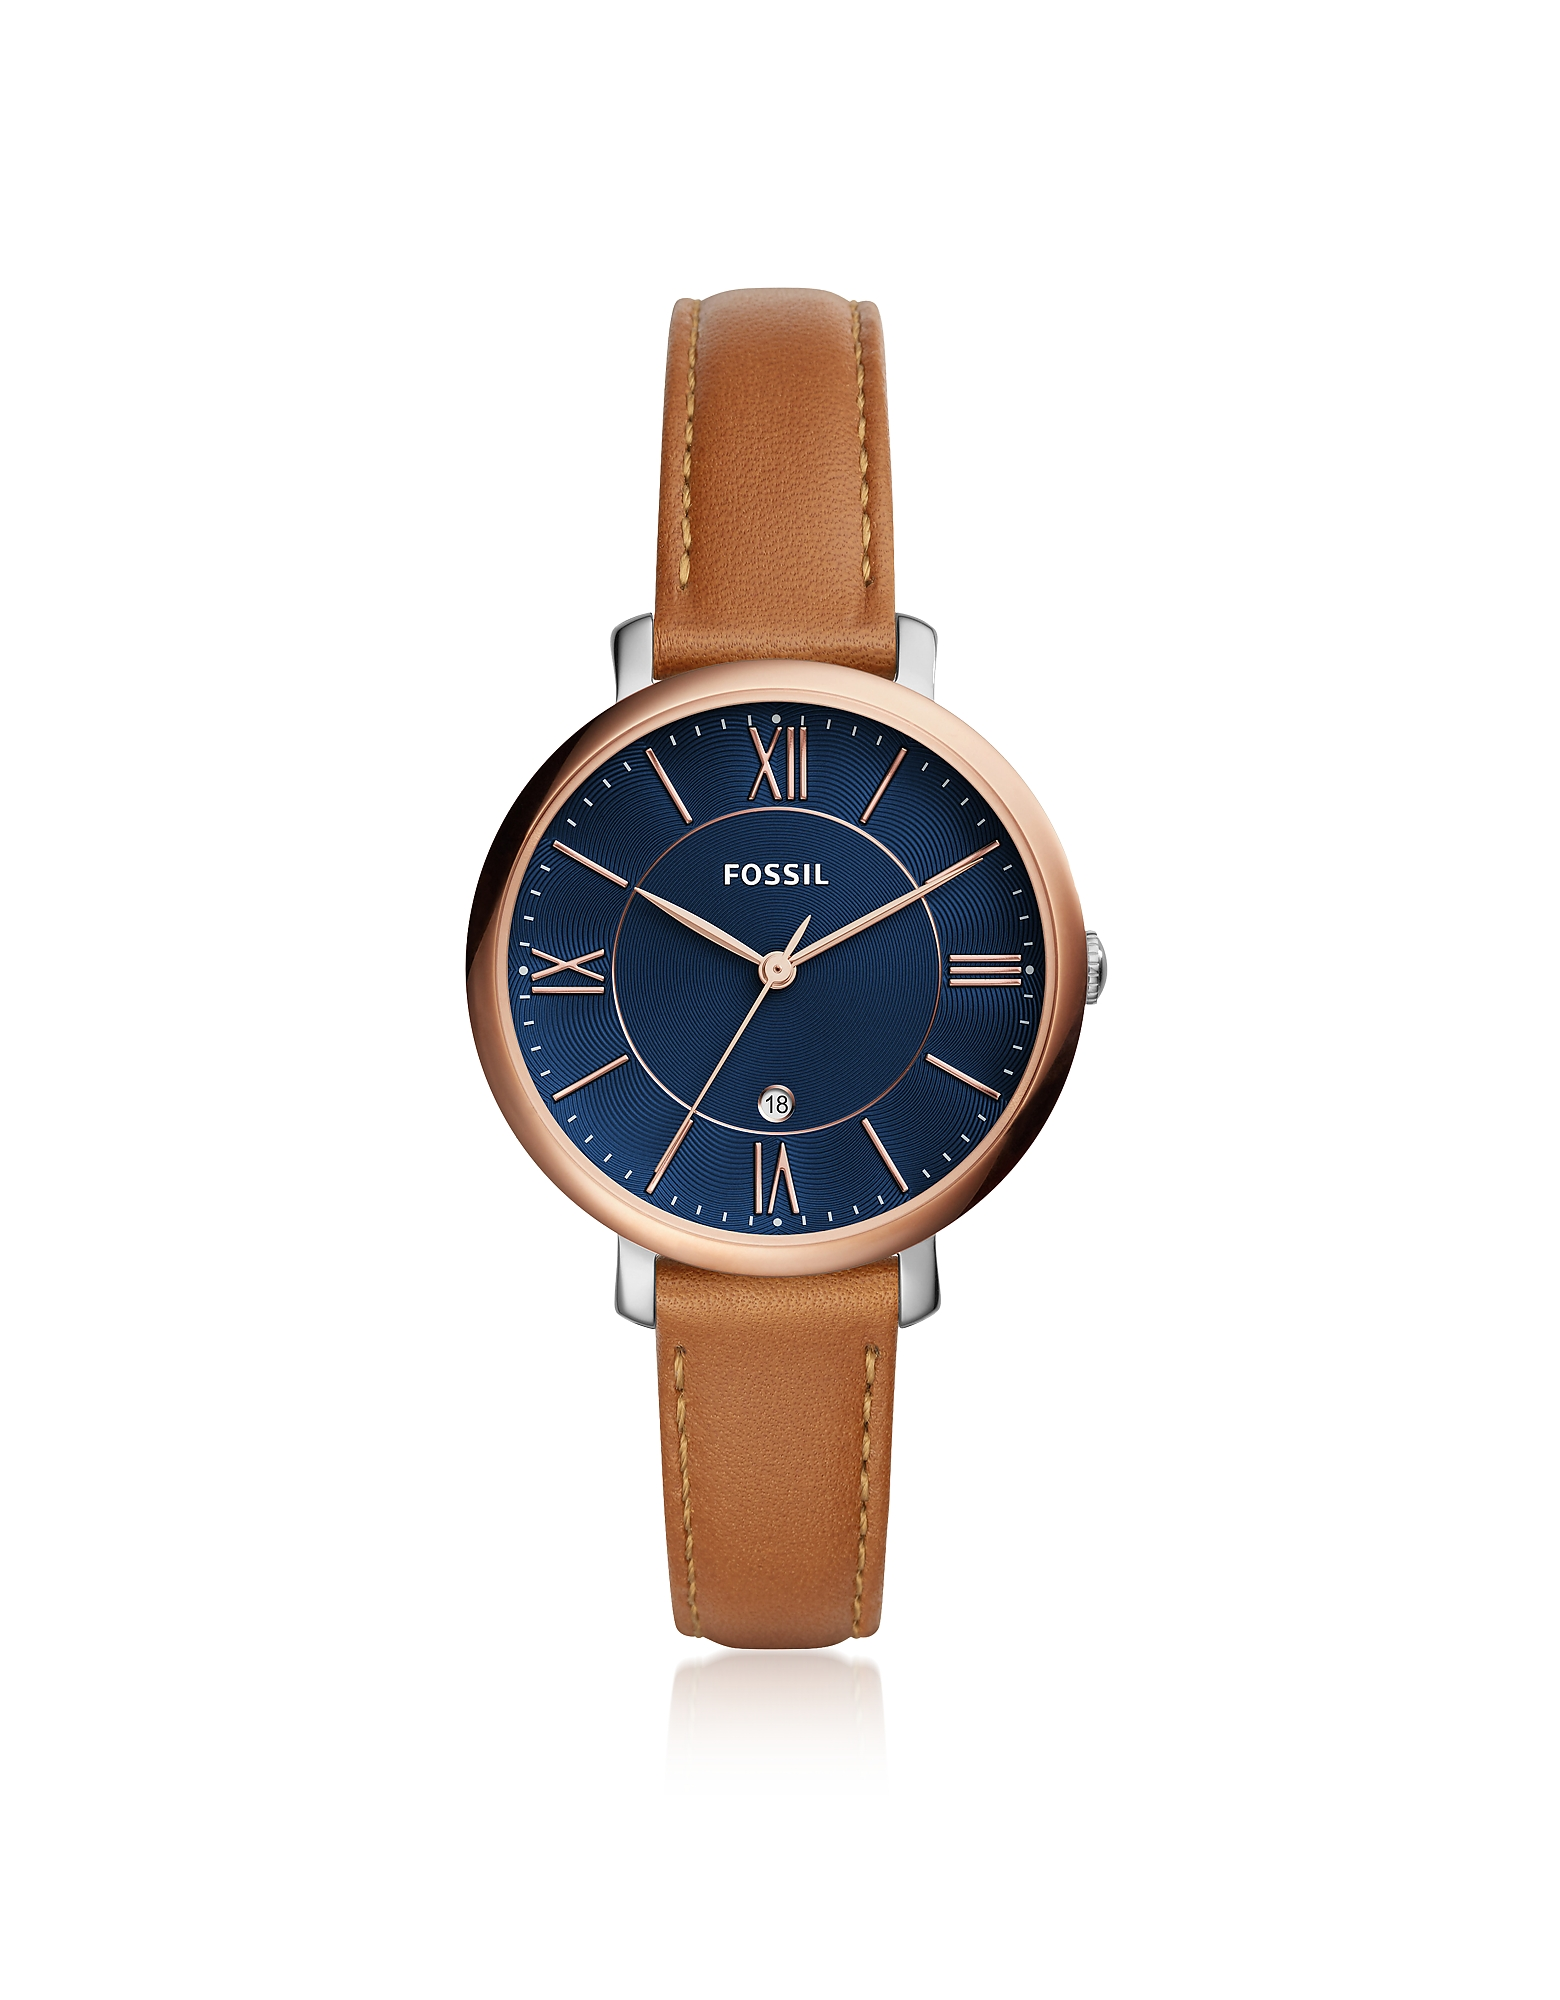 Fossil Women's Watches, Jacqueline Three-Hand Date Luggage Women's Watch